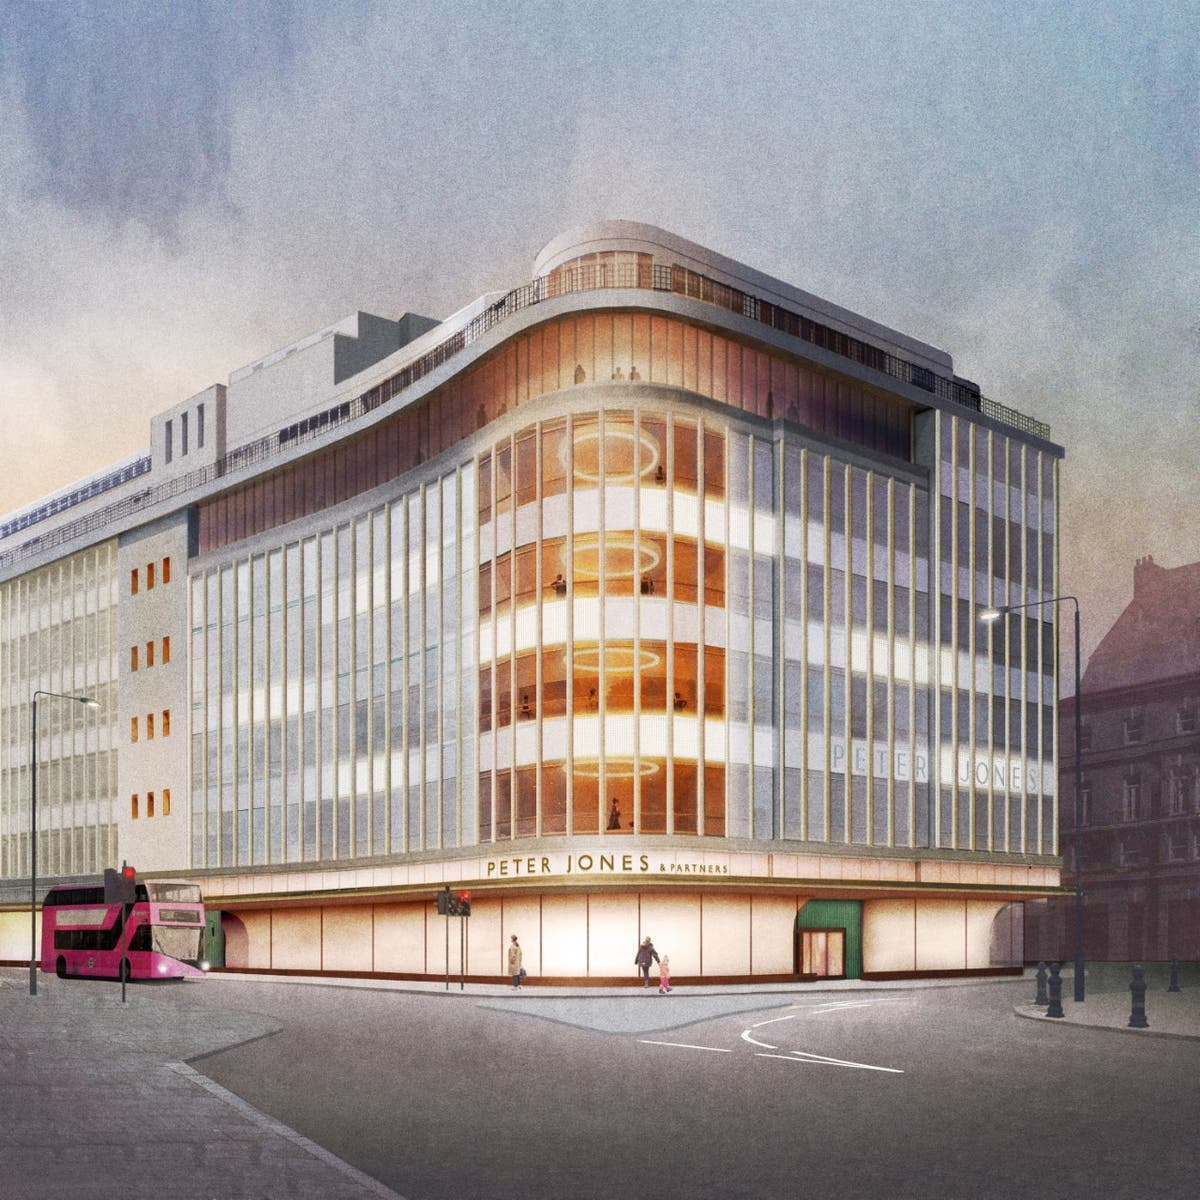 John Lewis start work on renovation project at its Peter Jones shop on Sloane Square